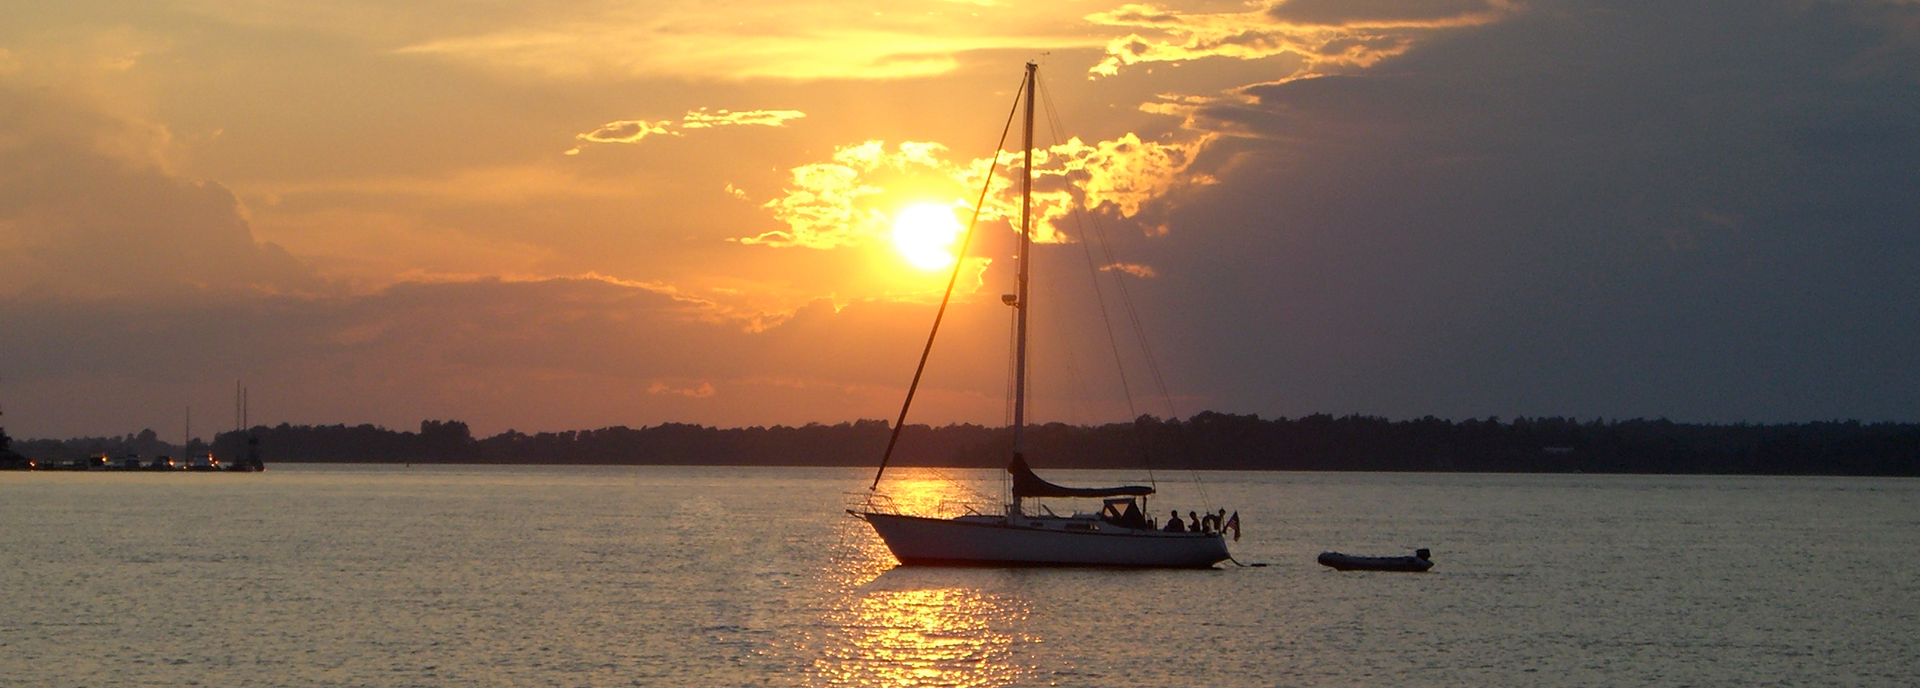 sailboat-at-sunset-1920x1200_edited.jpg